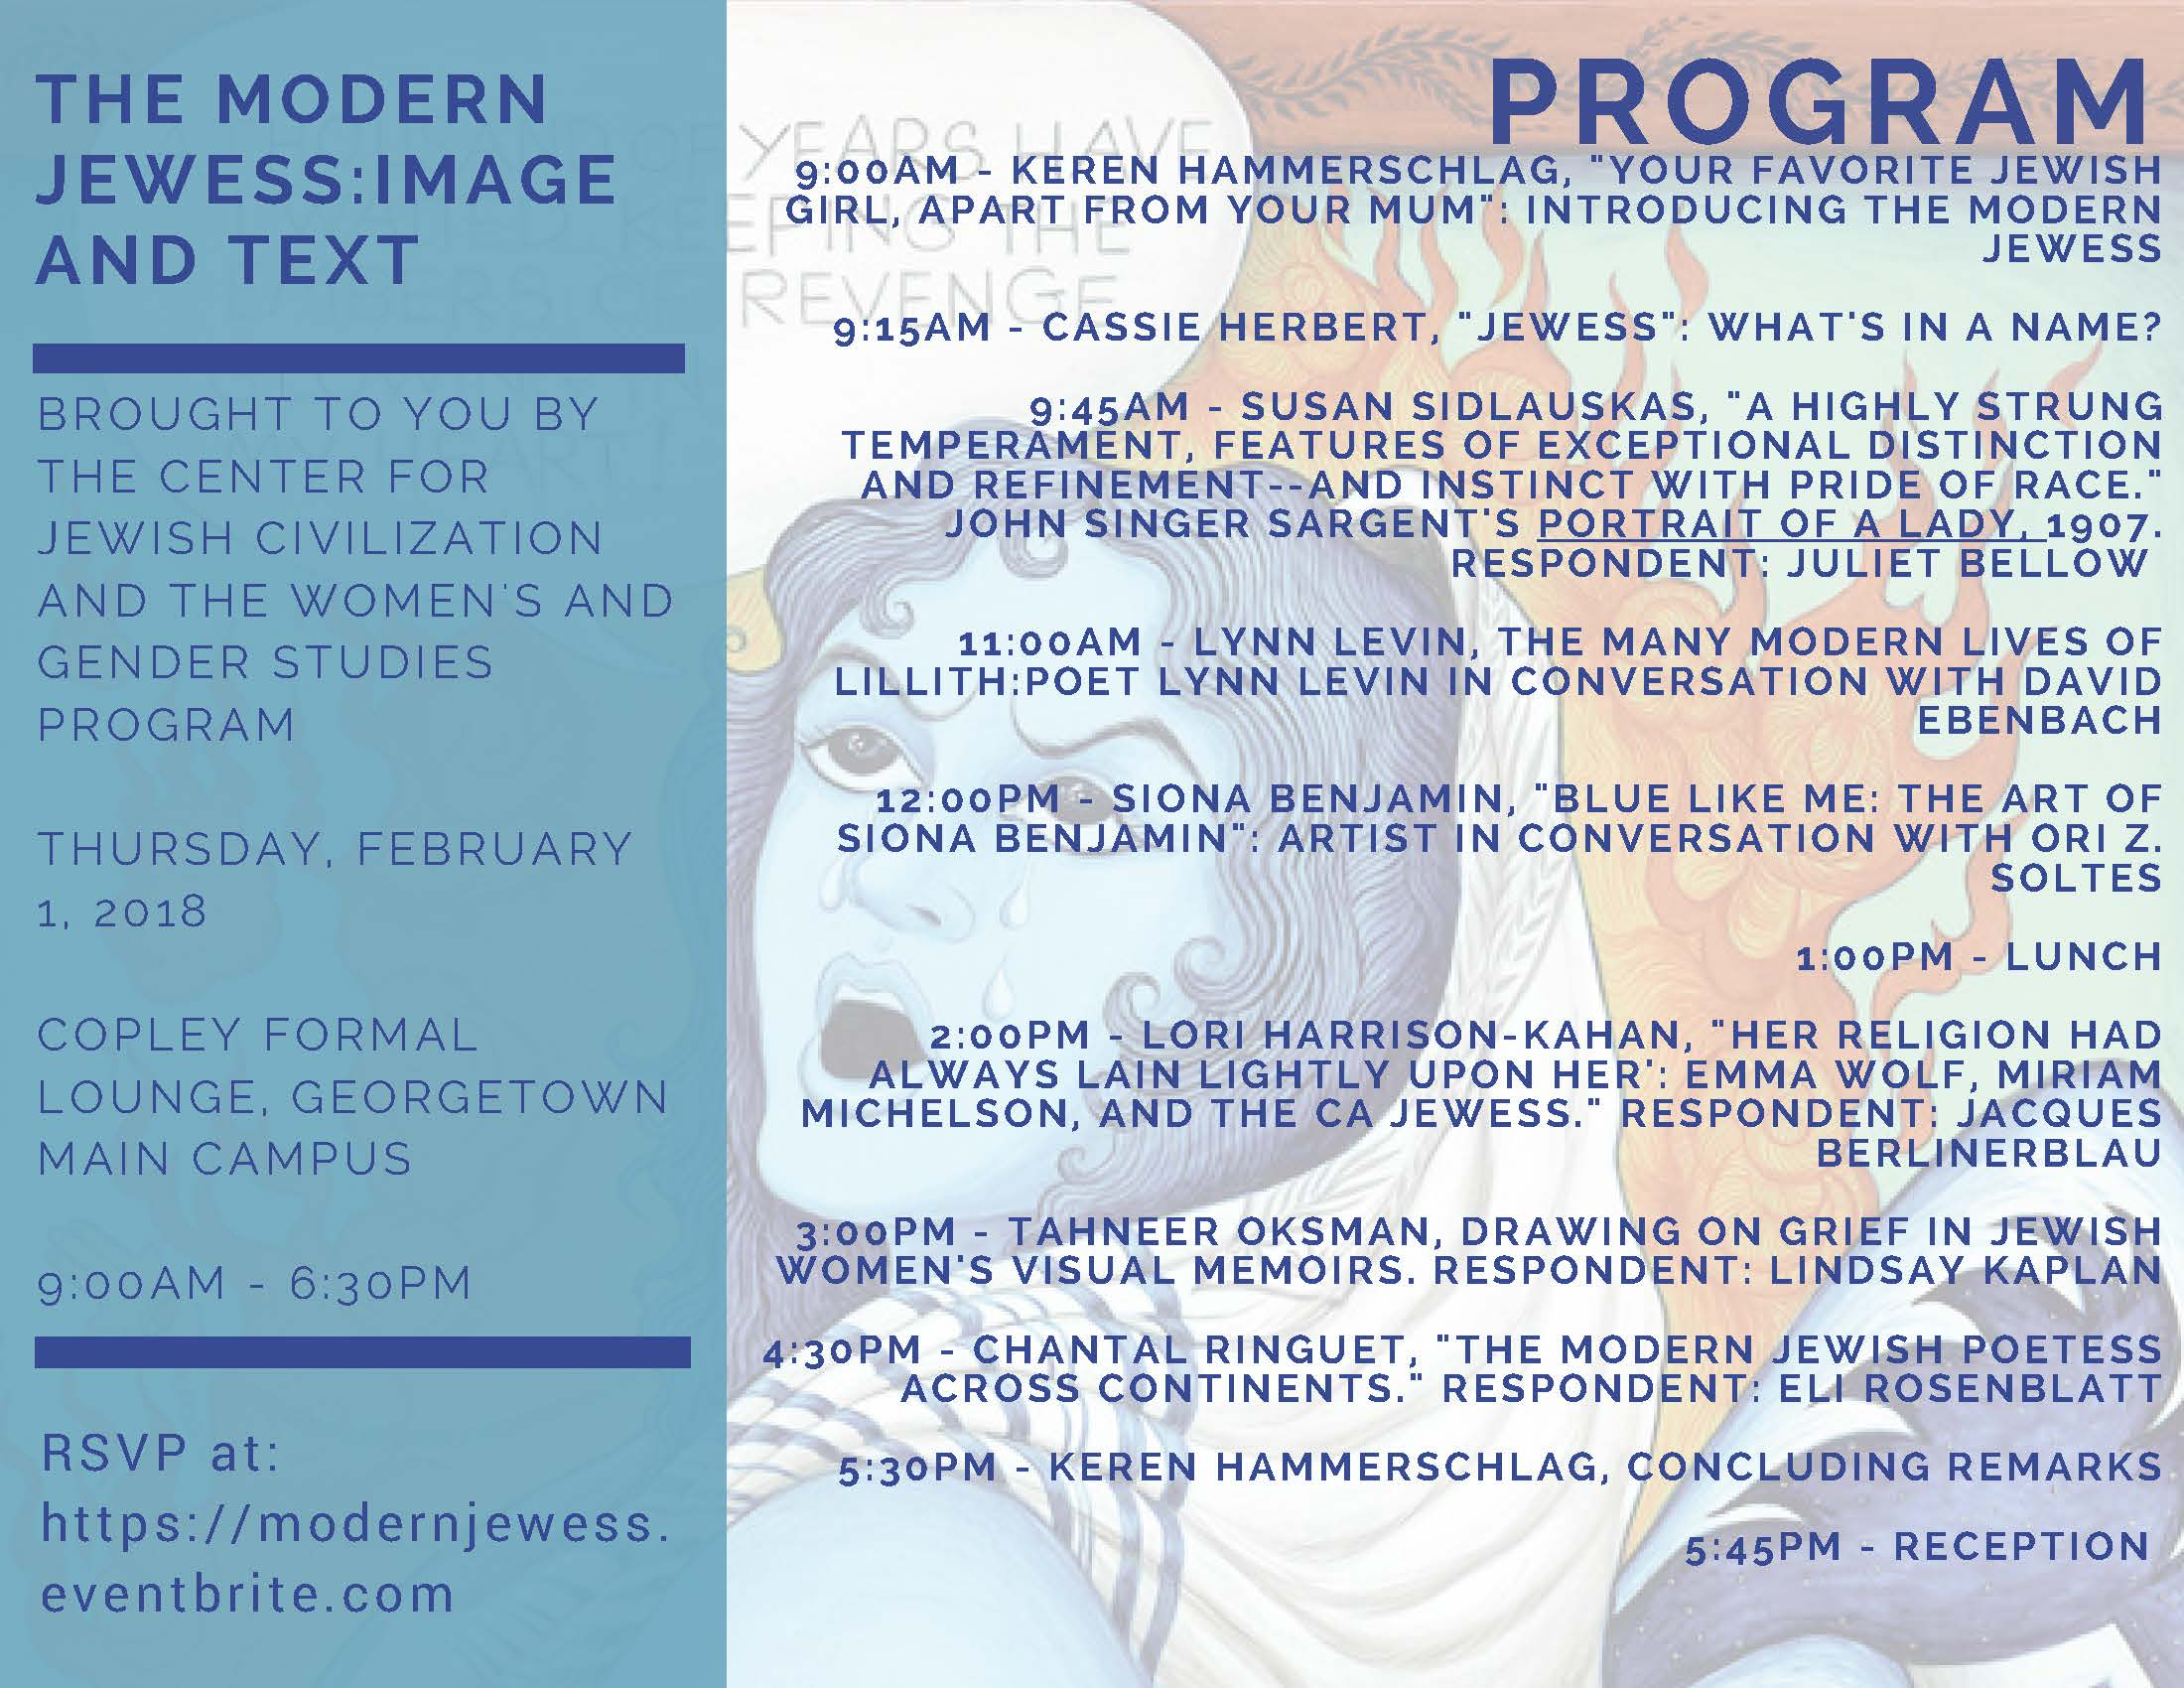 Network: The Modern Jewess: Image and Text Conference (Feb 1)